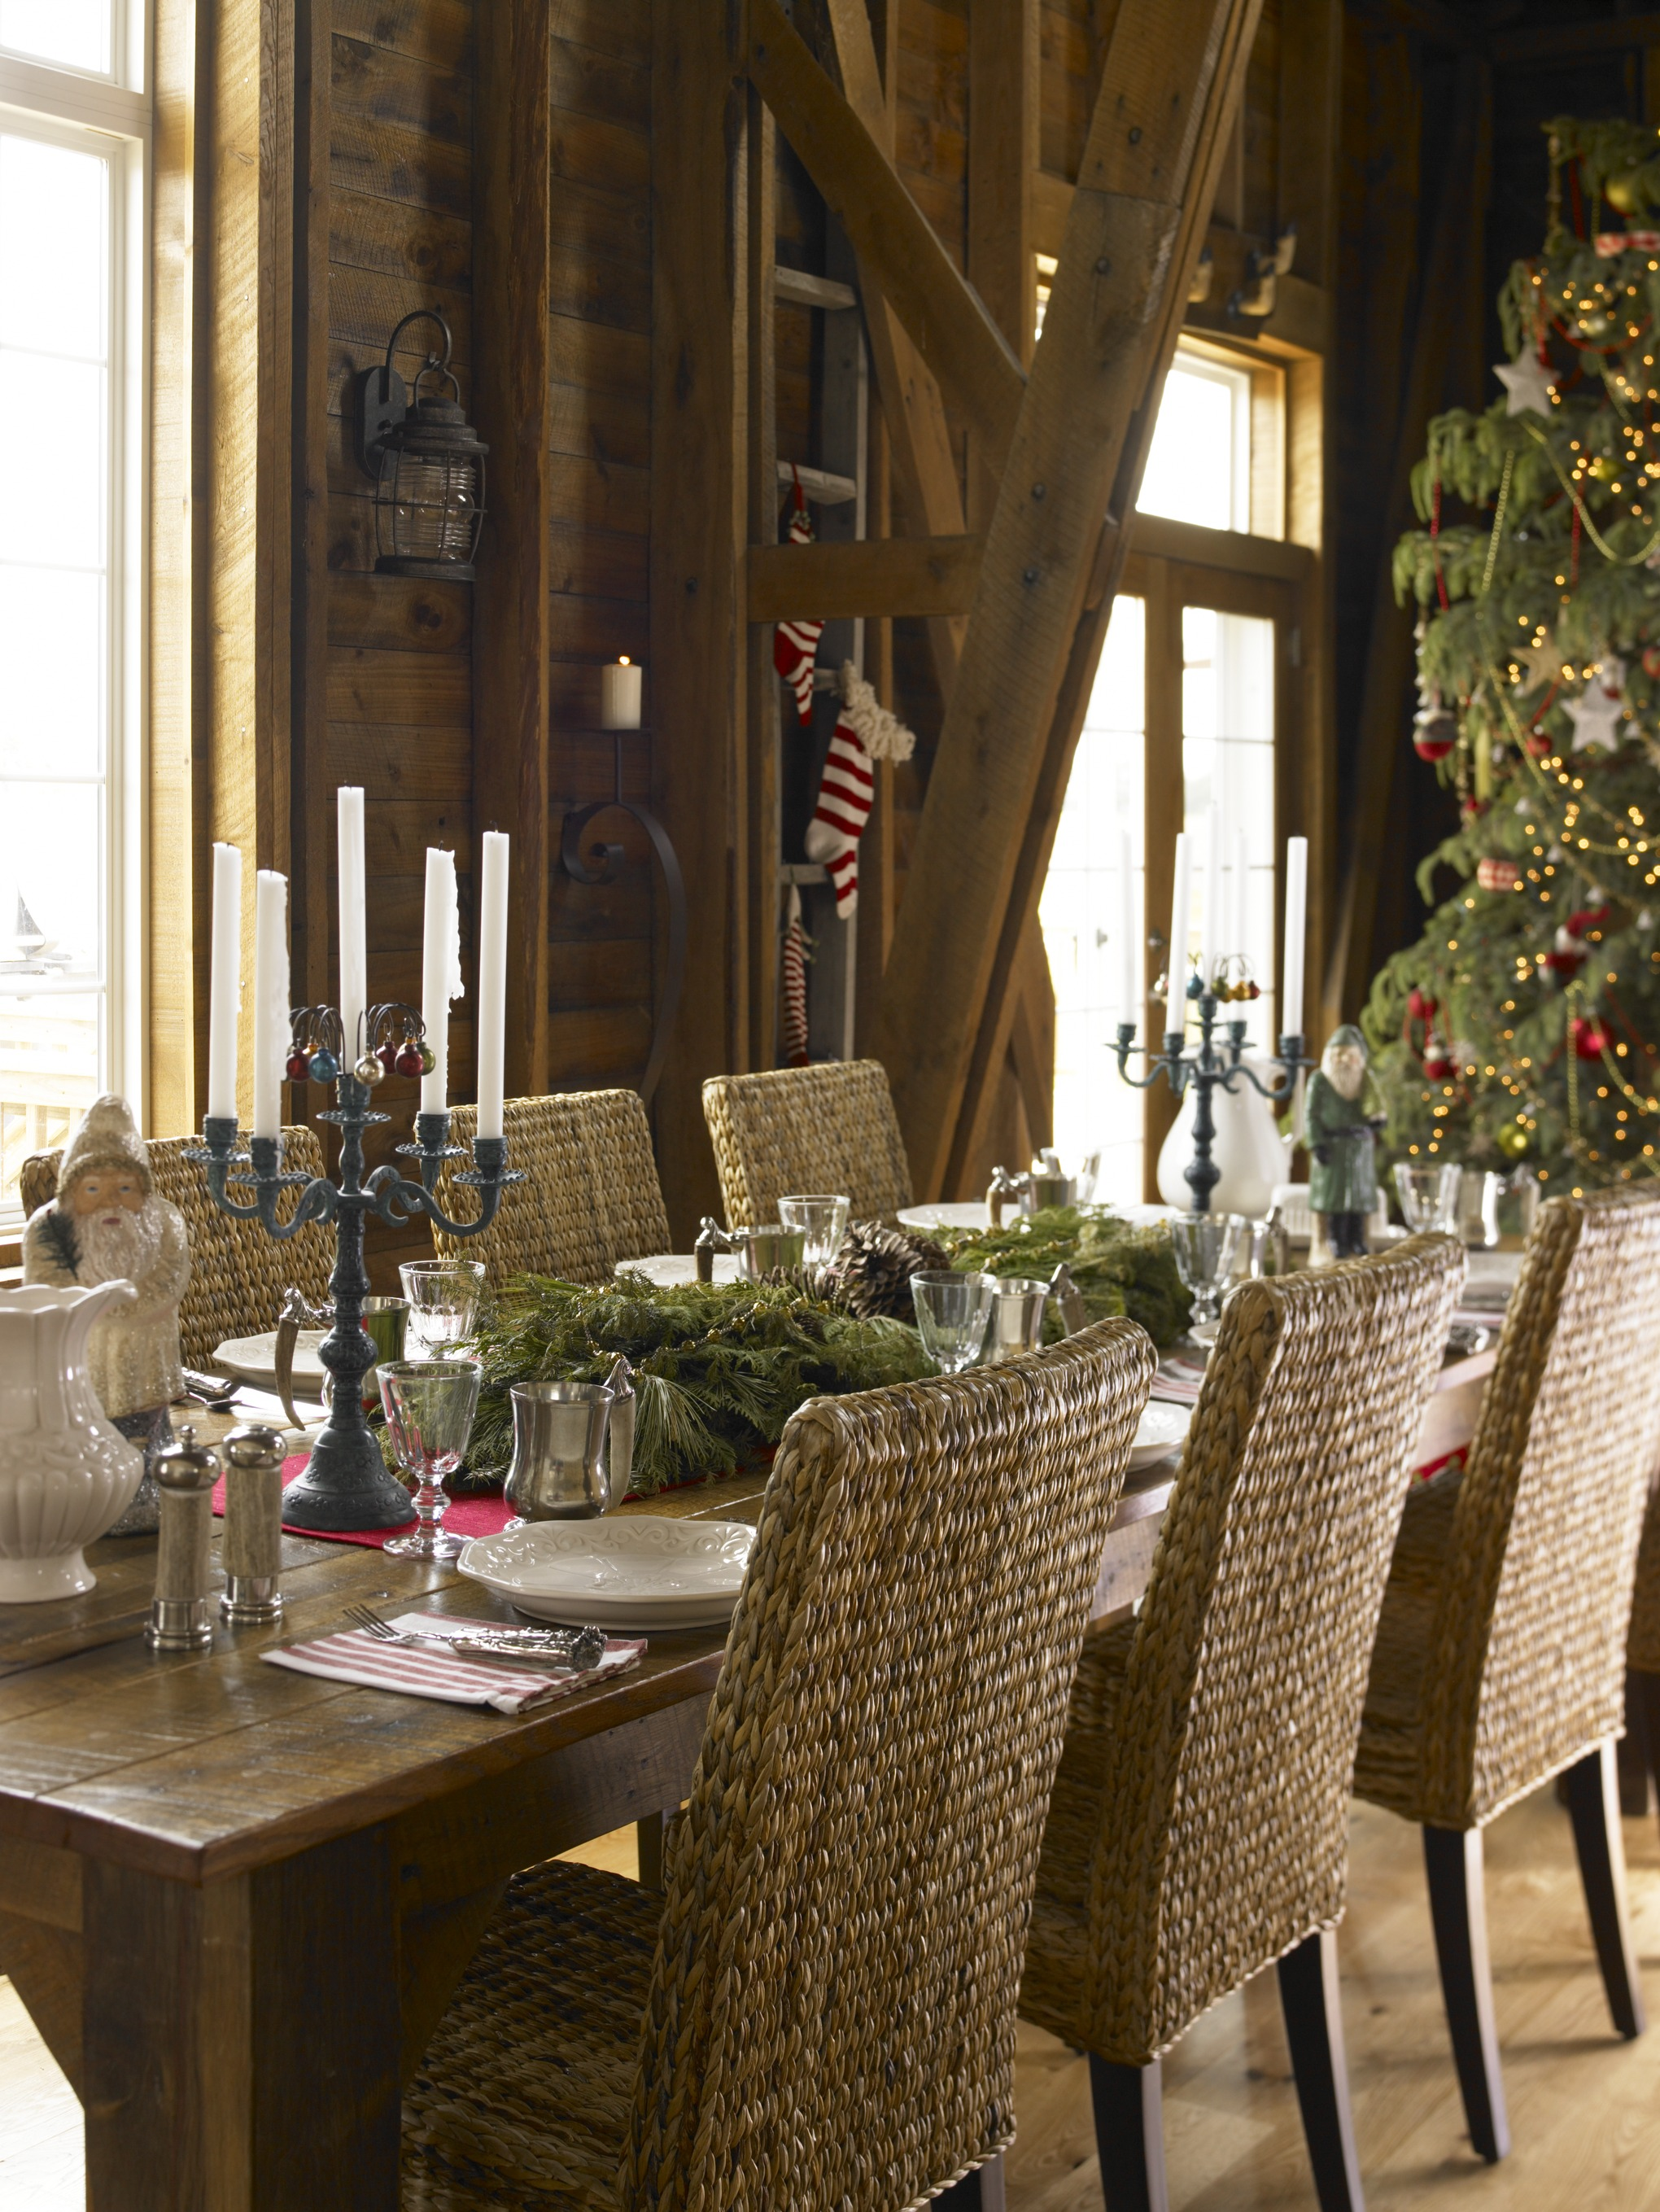 Tremendous Rustic Christmas Decor Traditional Home Download Free Architecture Designs Scobabritishbridgeorg